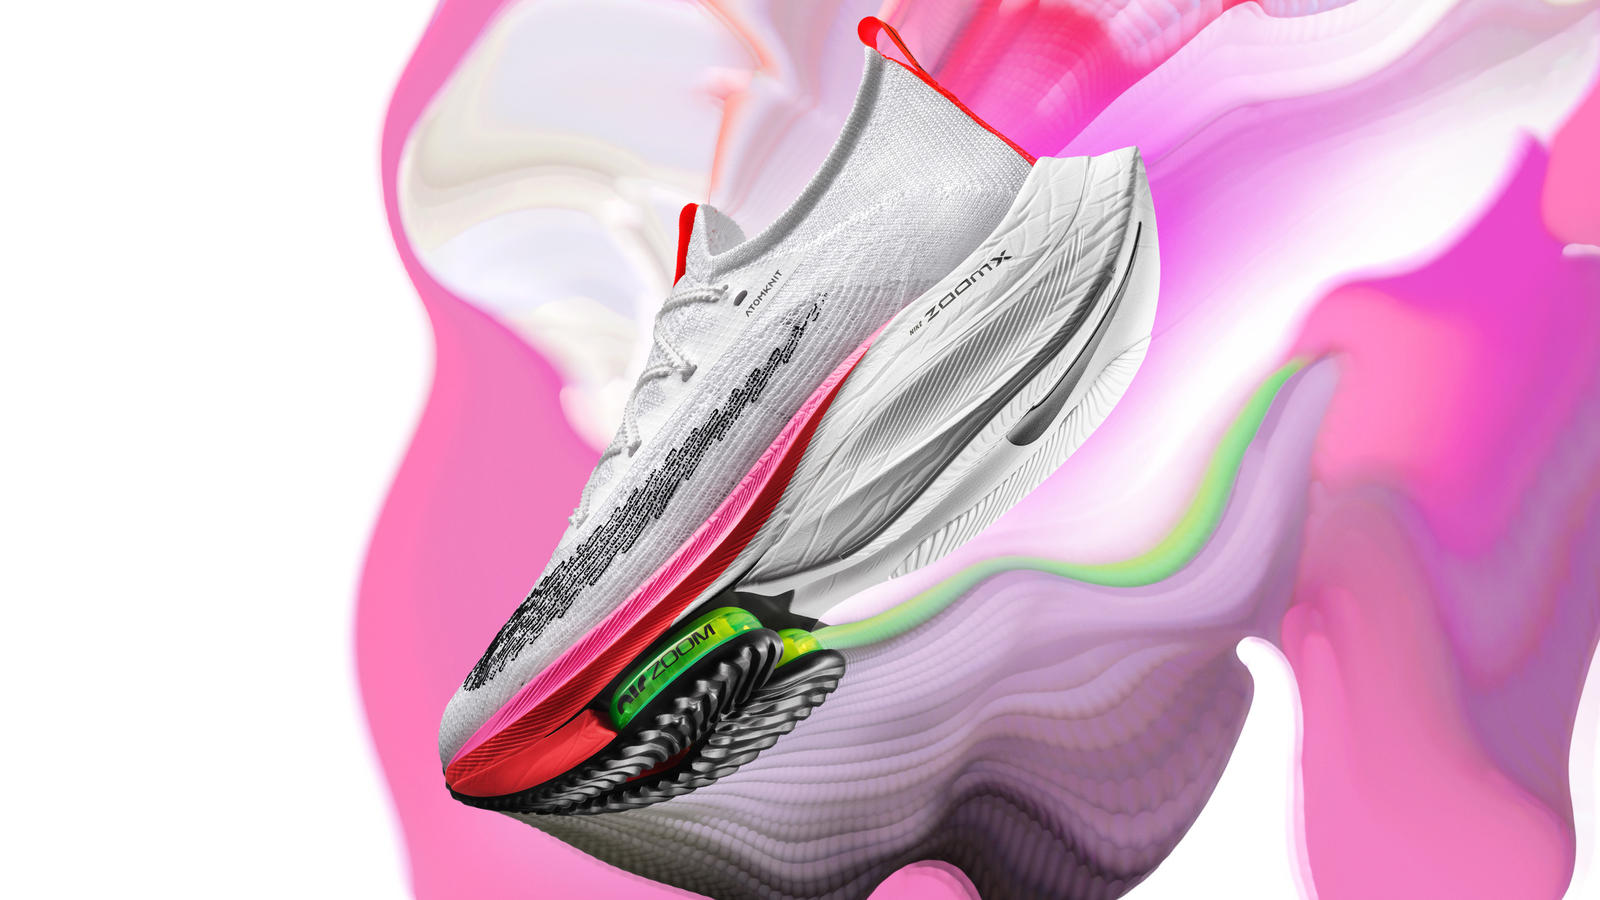 nike-rawdacious-colorway-tokyo-official-images-release-date